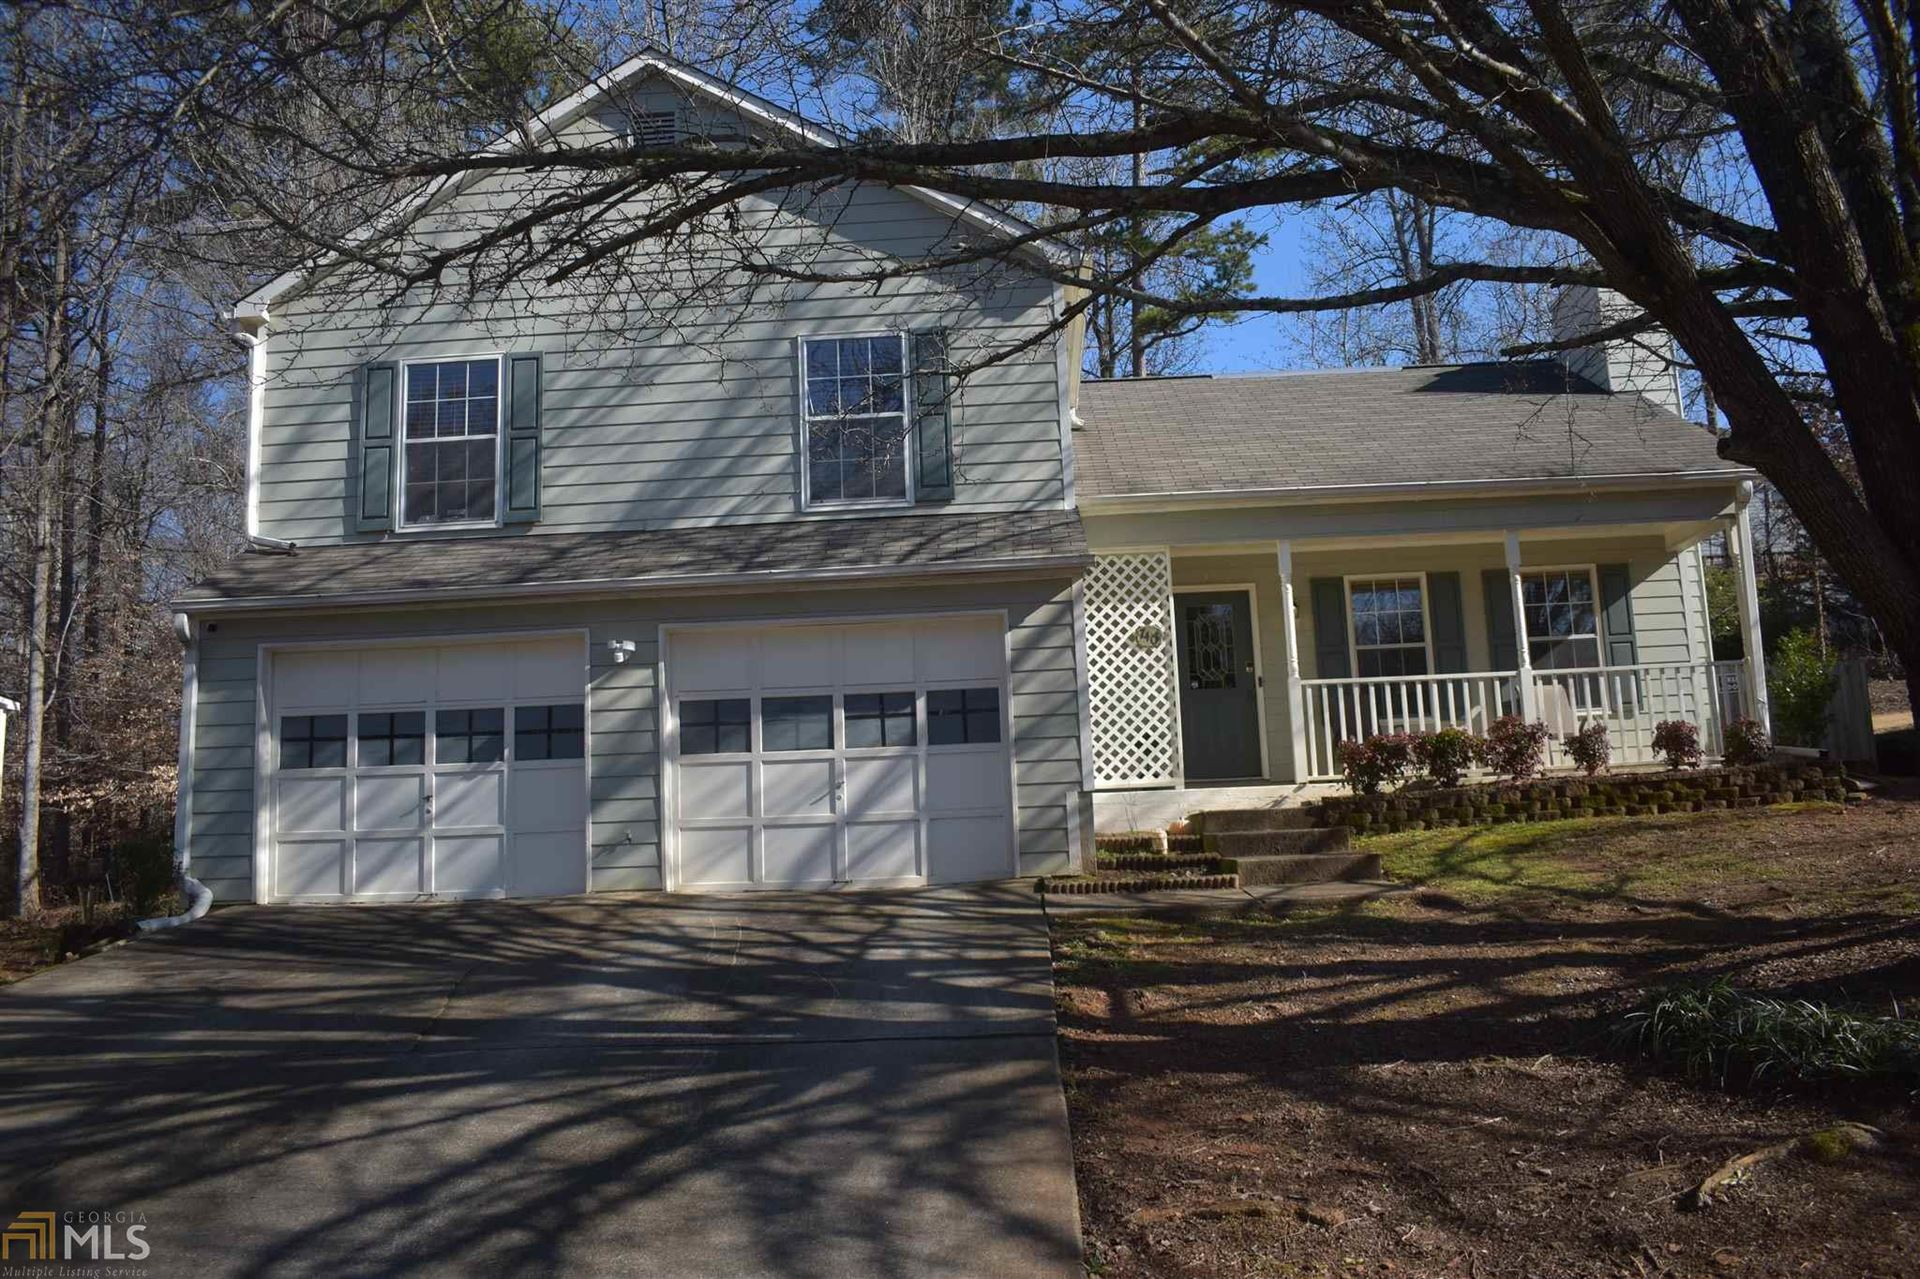 740 Josh, Lawrenceville, GA 30045 - MLS#: 8912600